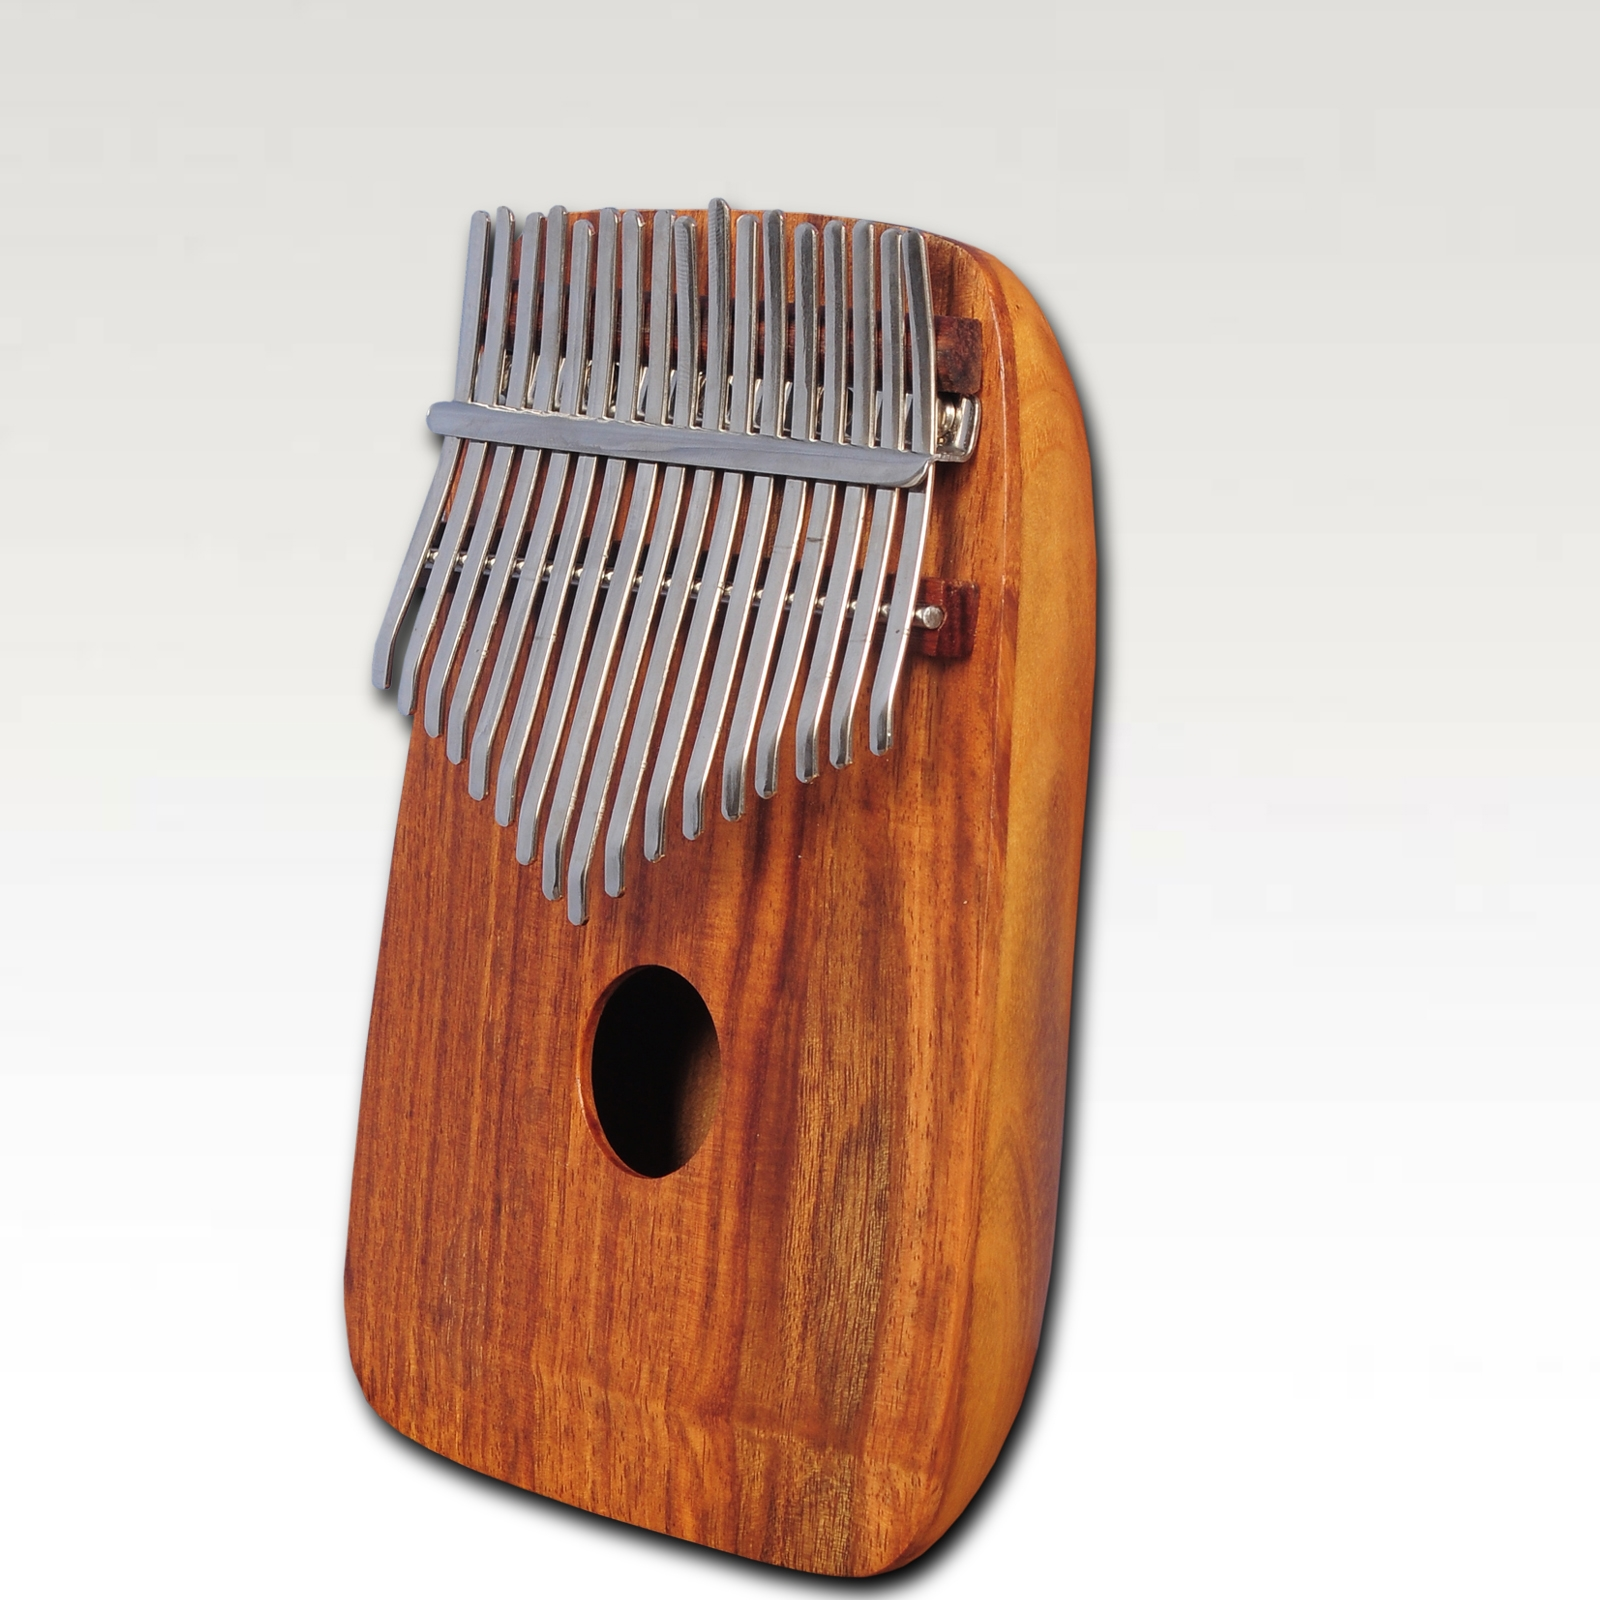 Heartland mulberry round back thumb piano, african kalimba, mbira with rosewood top -0